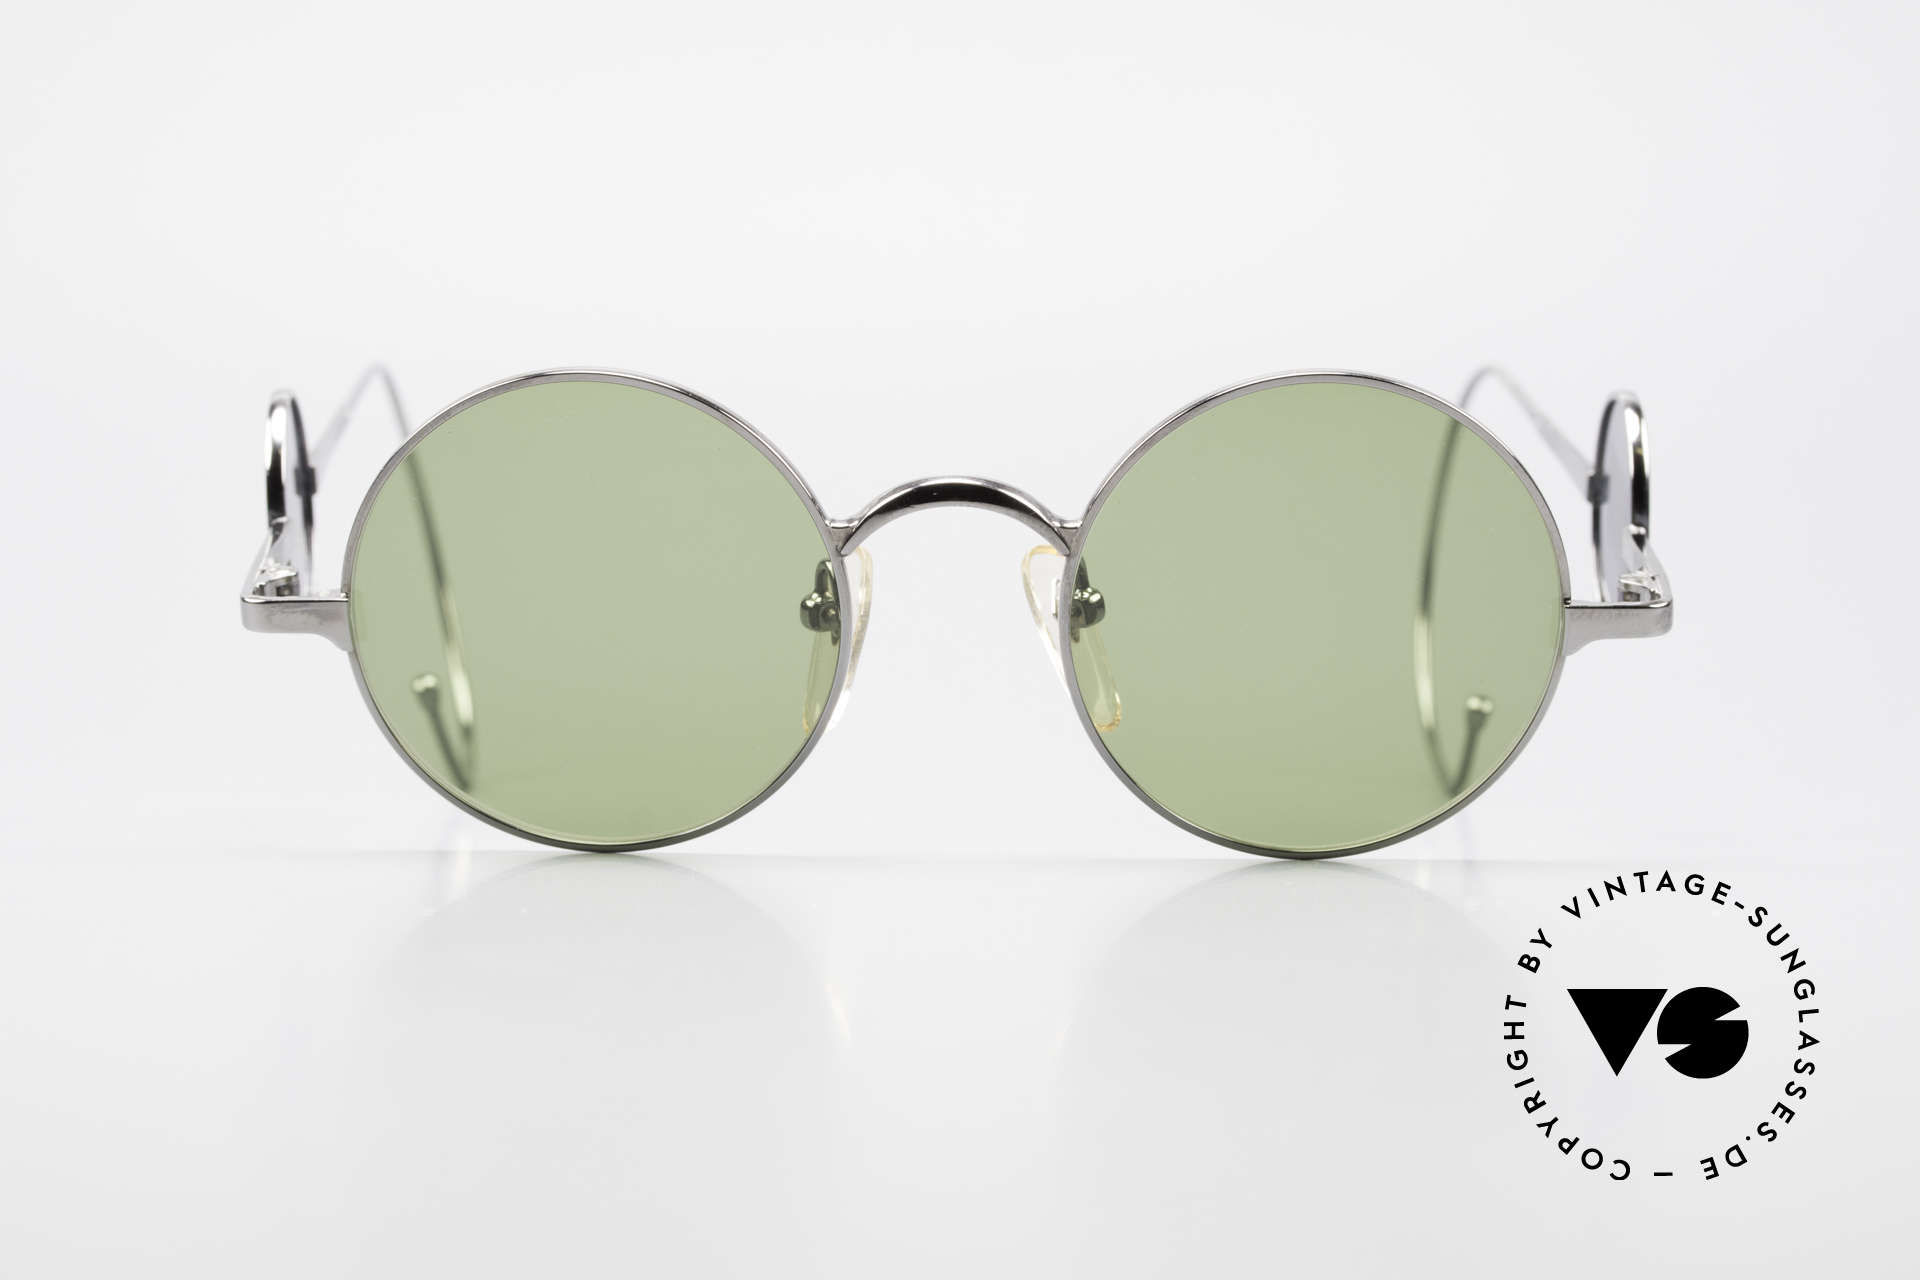 Jean Paul Gaultier 58-0103 4lens Design With Side Shields, model of the JUNIOR GAULTIER series with side-lenses, Made for Men and Women